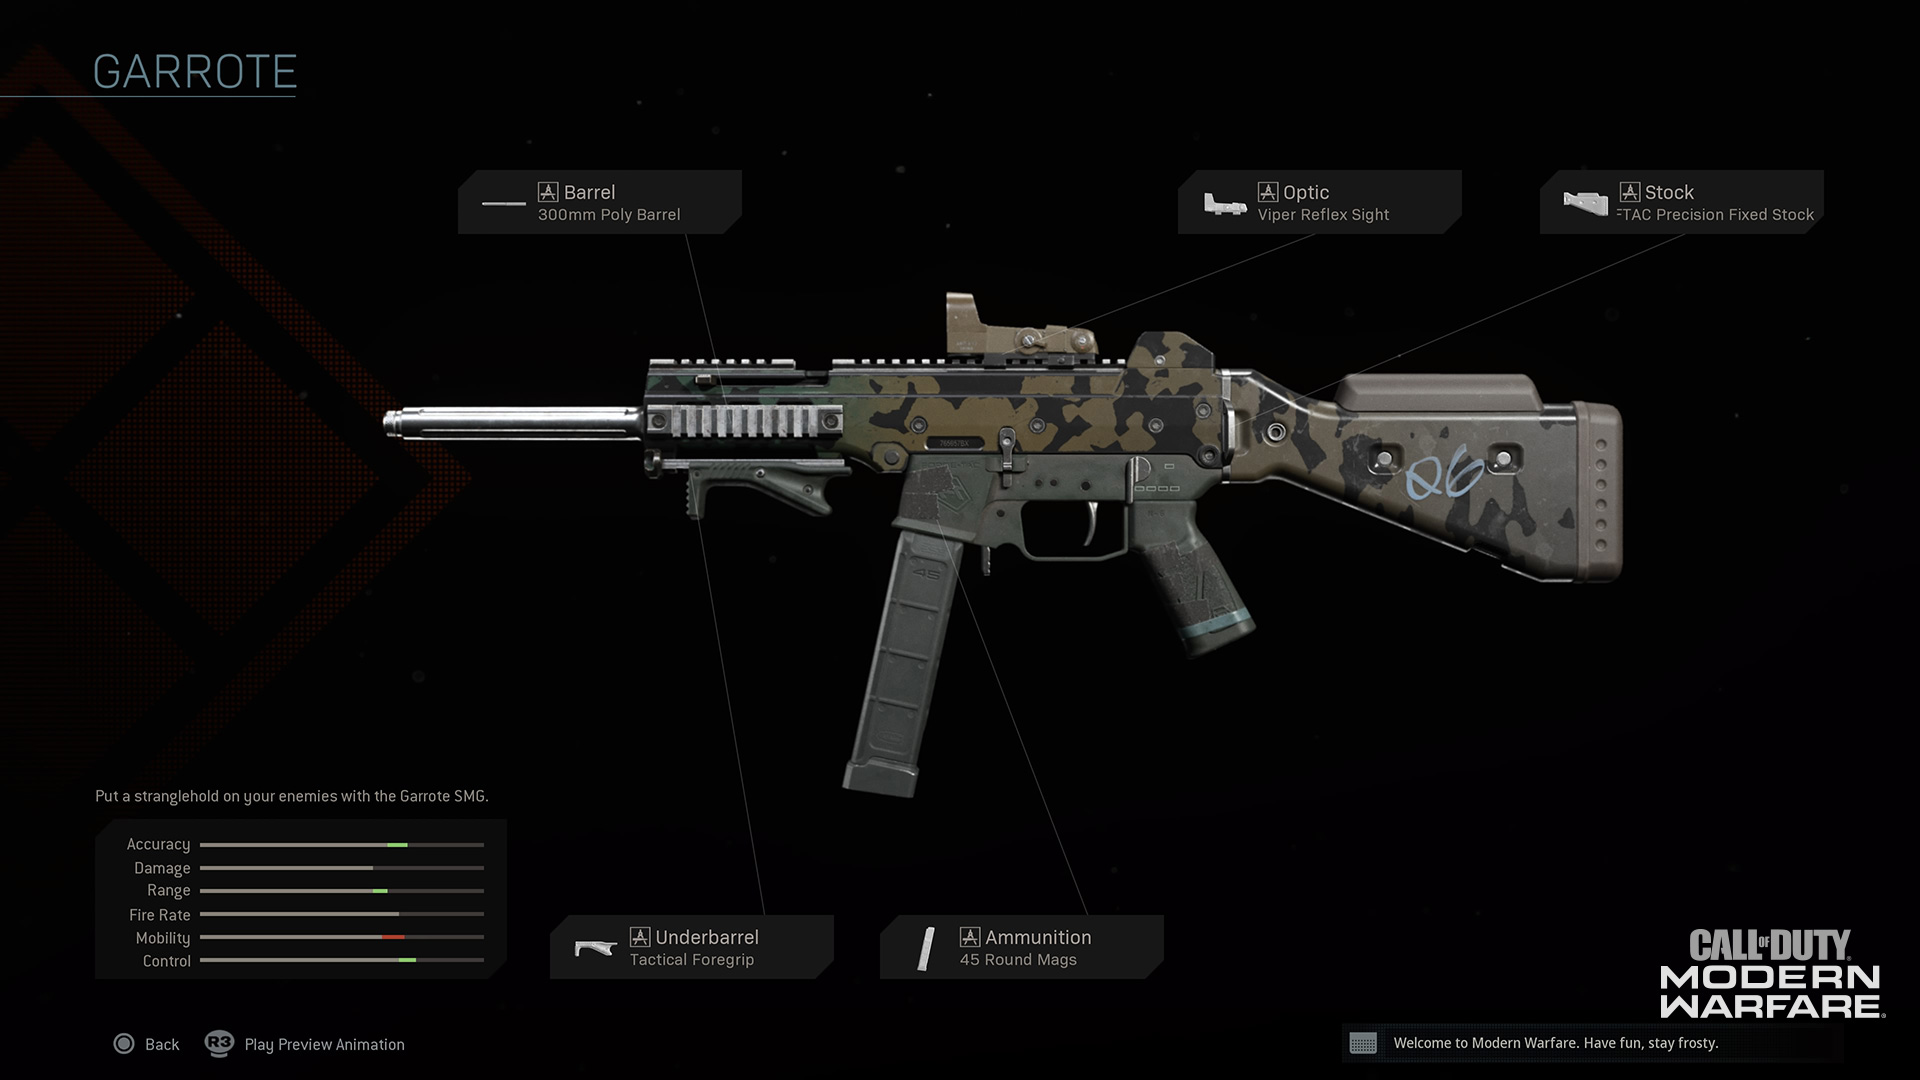 Modern Warfare, Including Warzone – A Store Bundle Refresh Featuring Mace! - Image 3